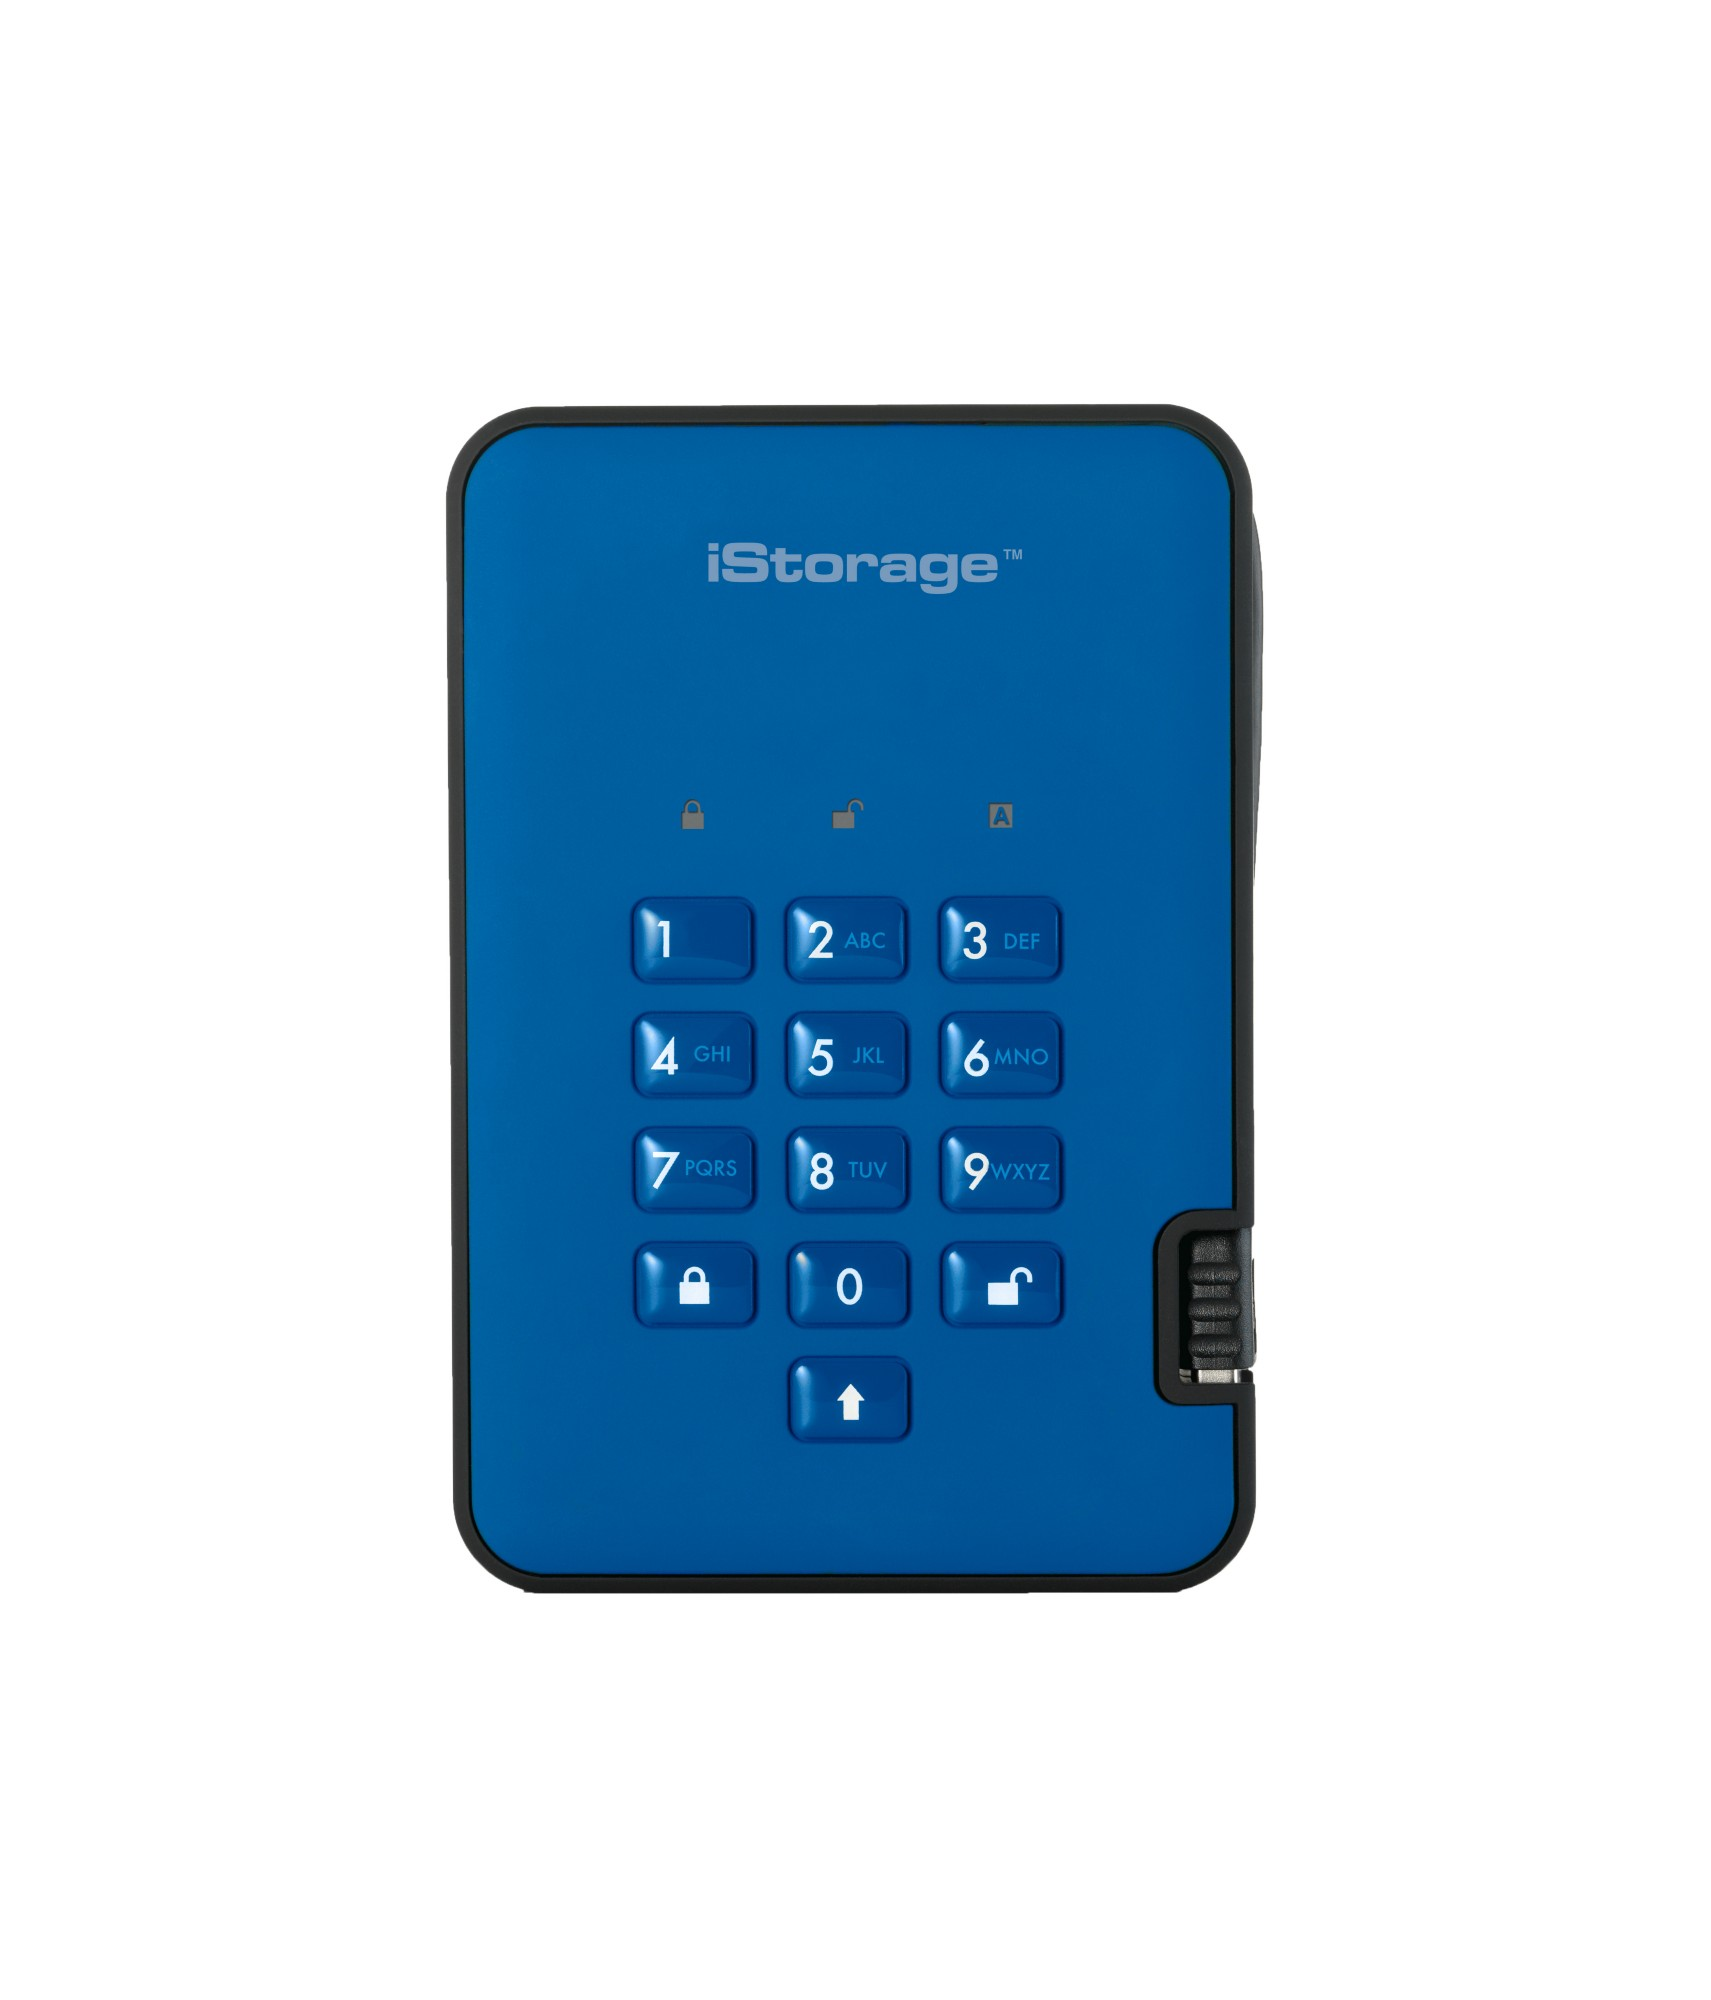 ISTORAGE IS-DA2-256-2000-BE DISKASHUR 2 EXTERNAL HARD DRIVE 2000 GB BLUE